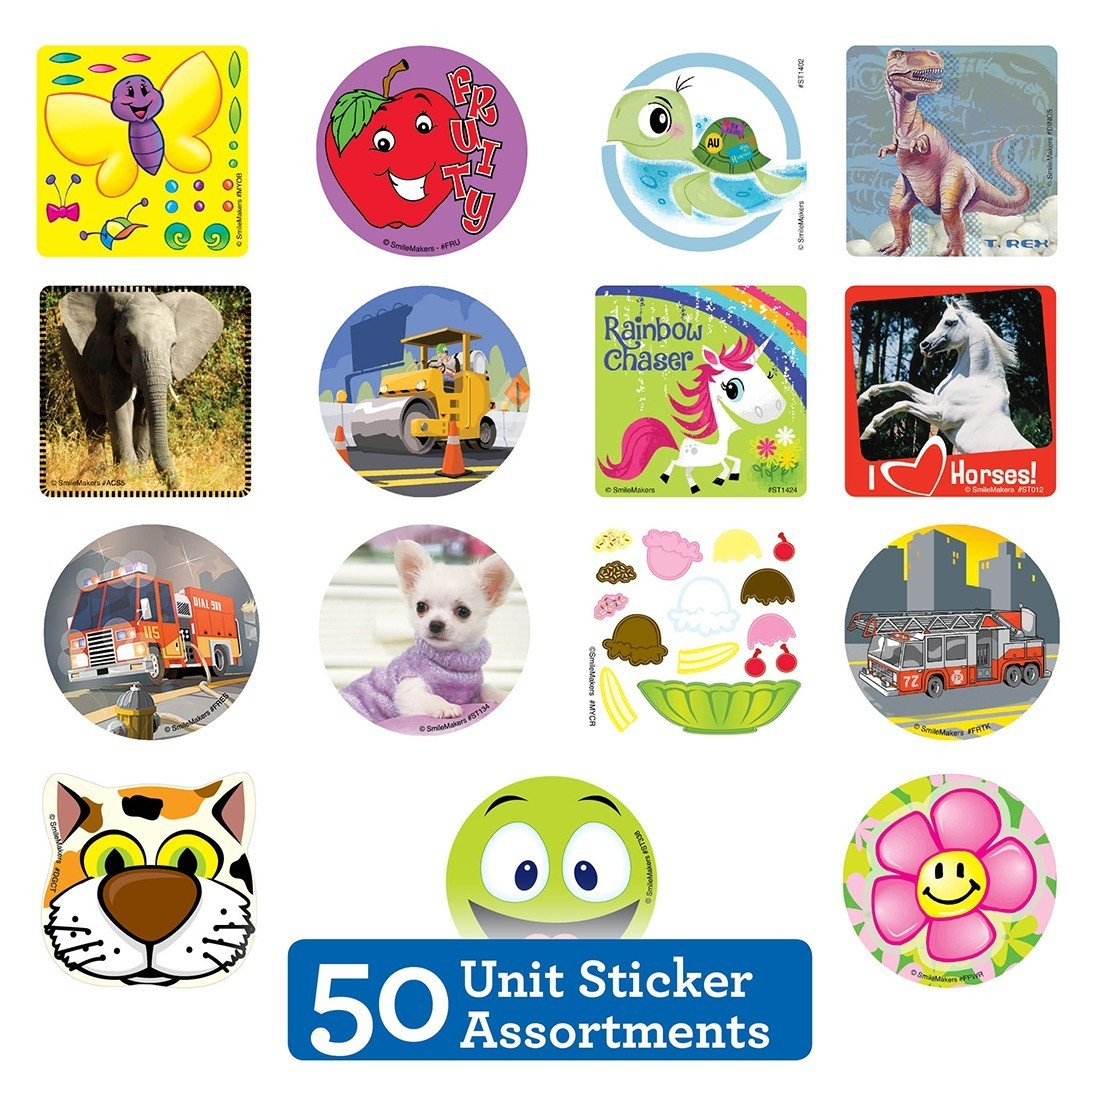 50 Unit Sticker Sampler                            [image]